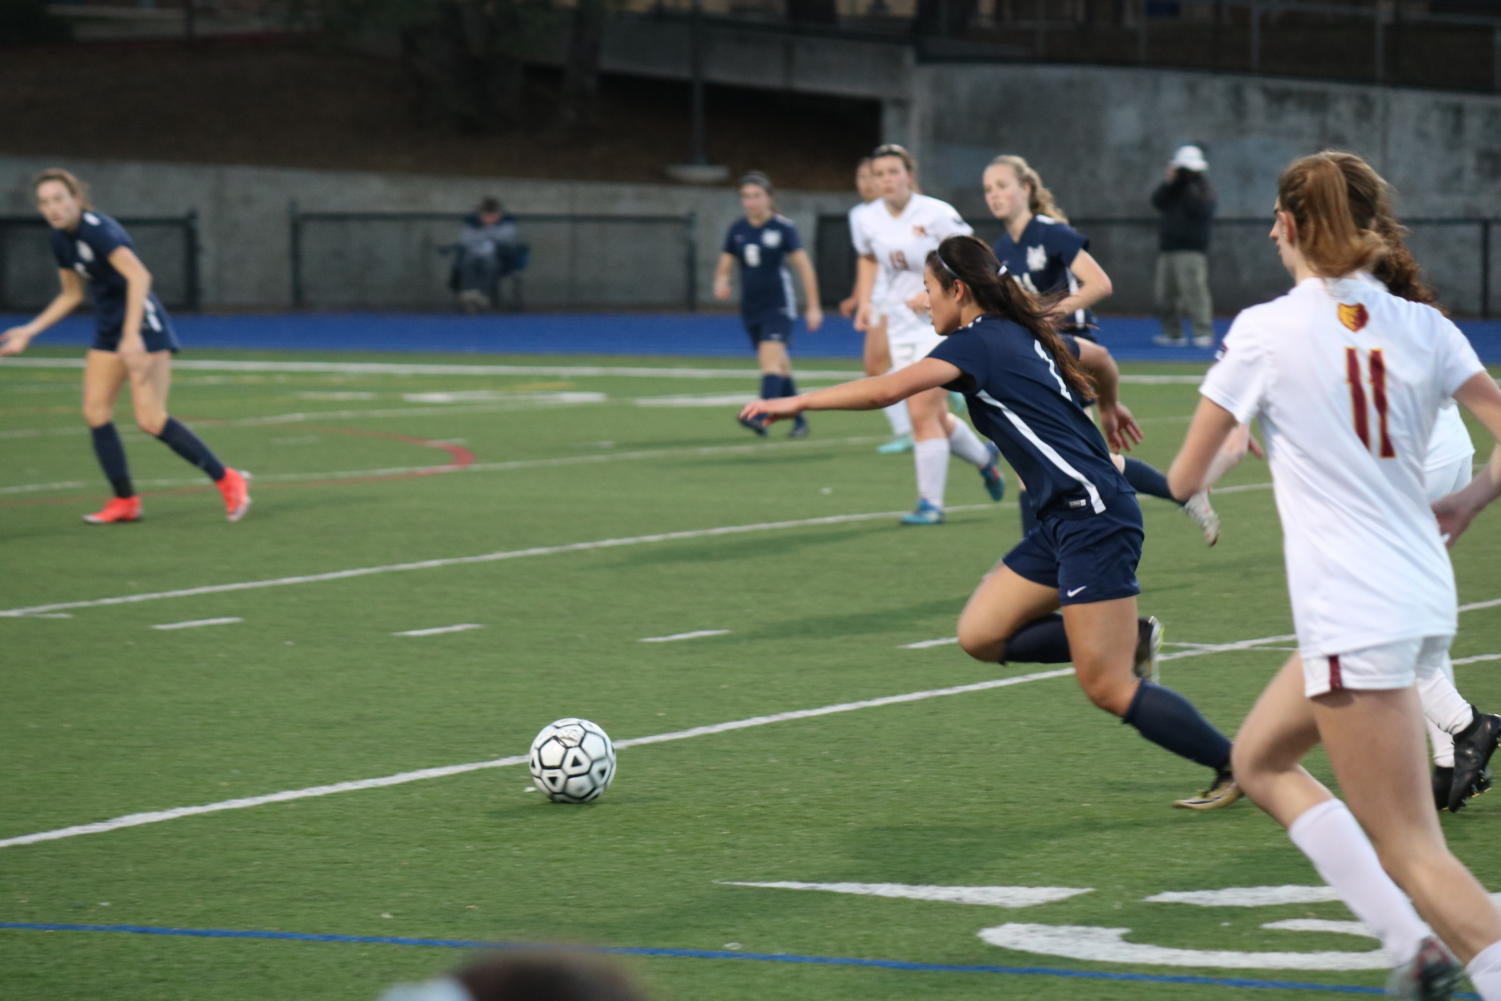 Ali Uozumi, a sophmore, charges towards the goal with the ball.